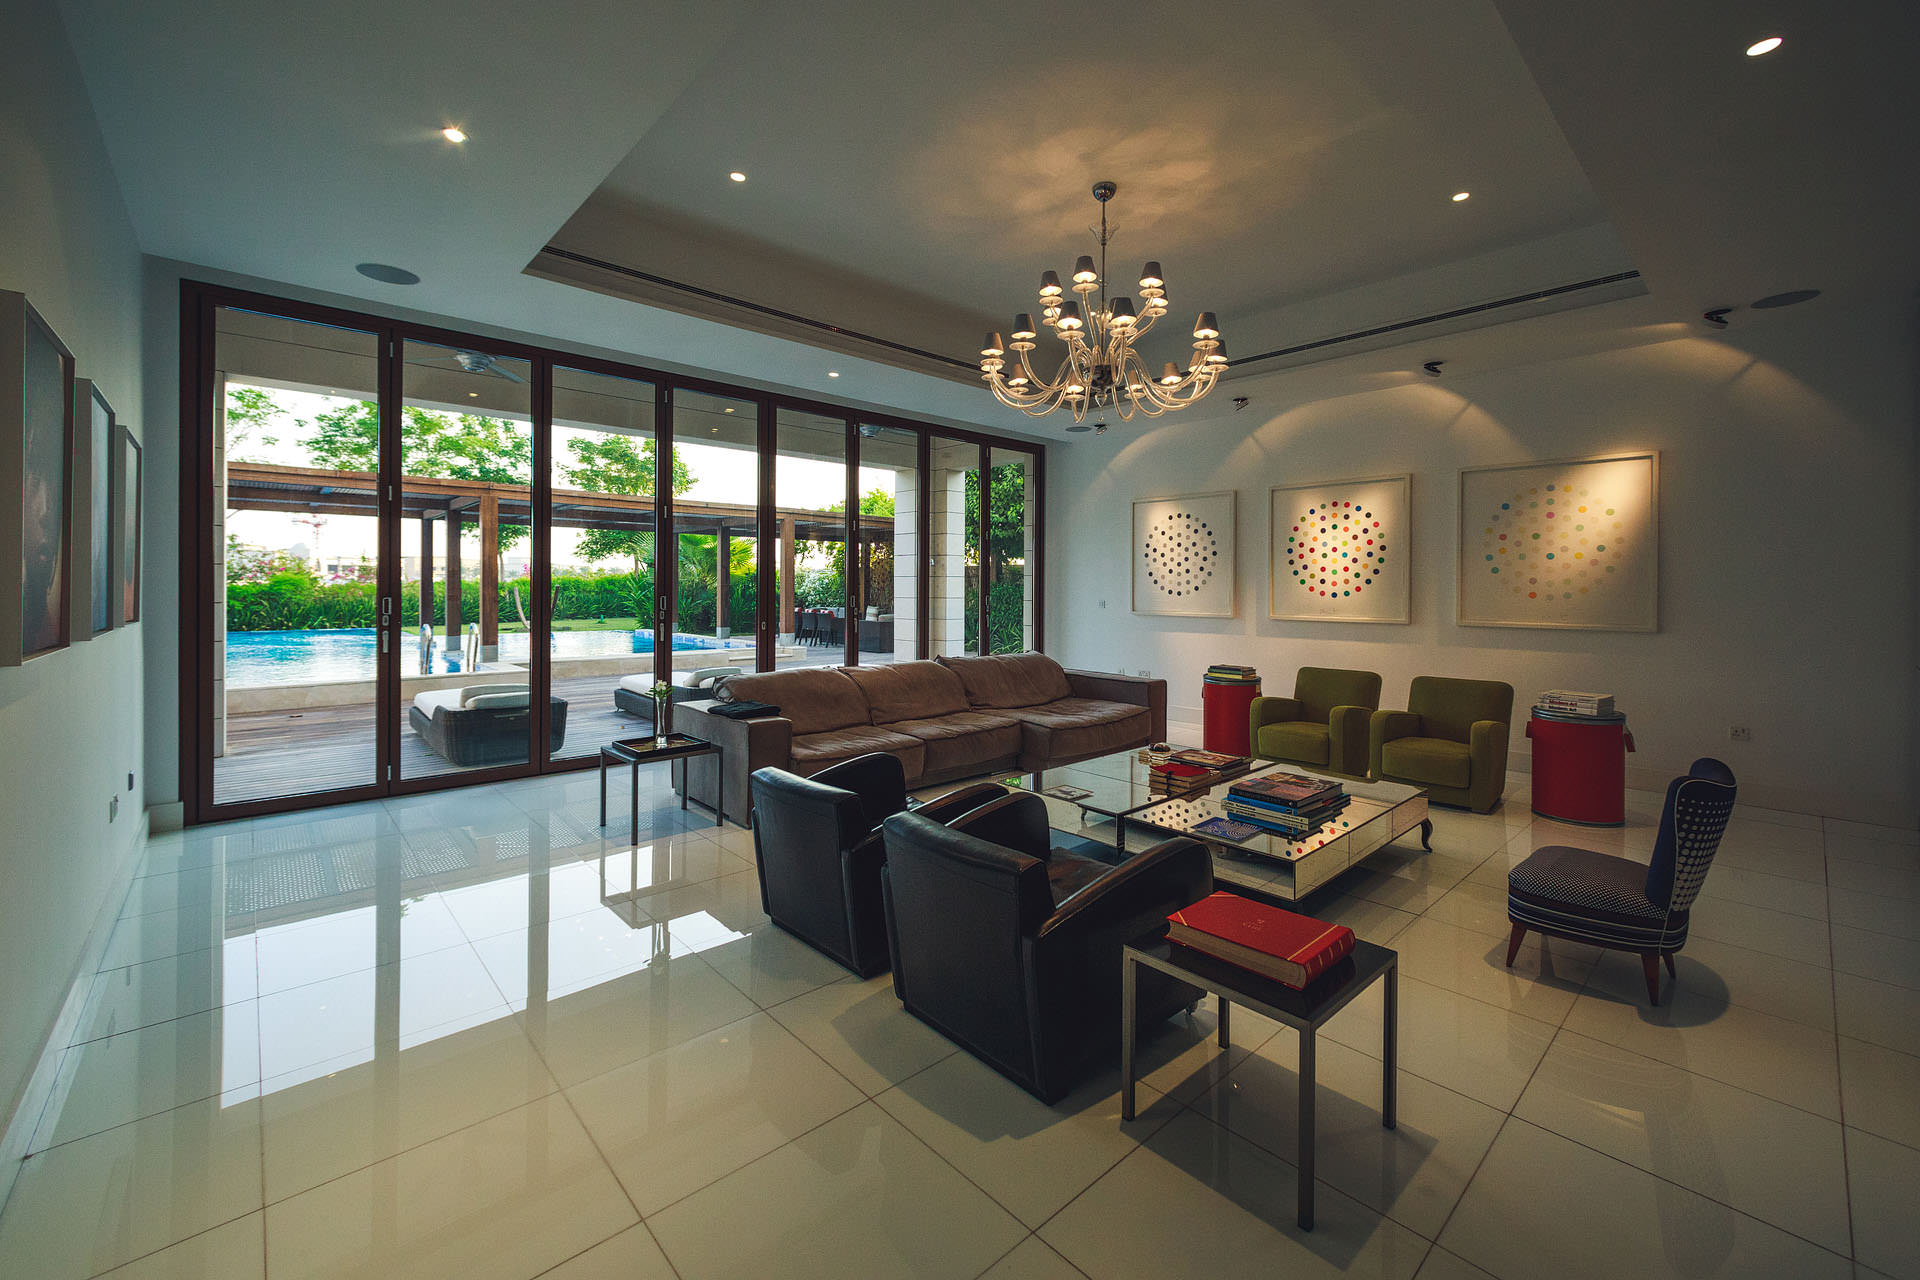 6781 dubai luxury home photographer international